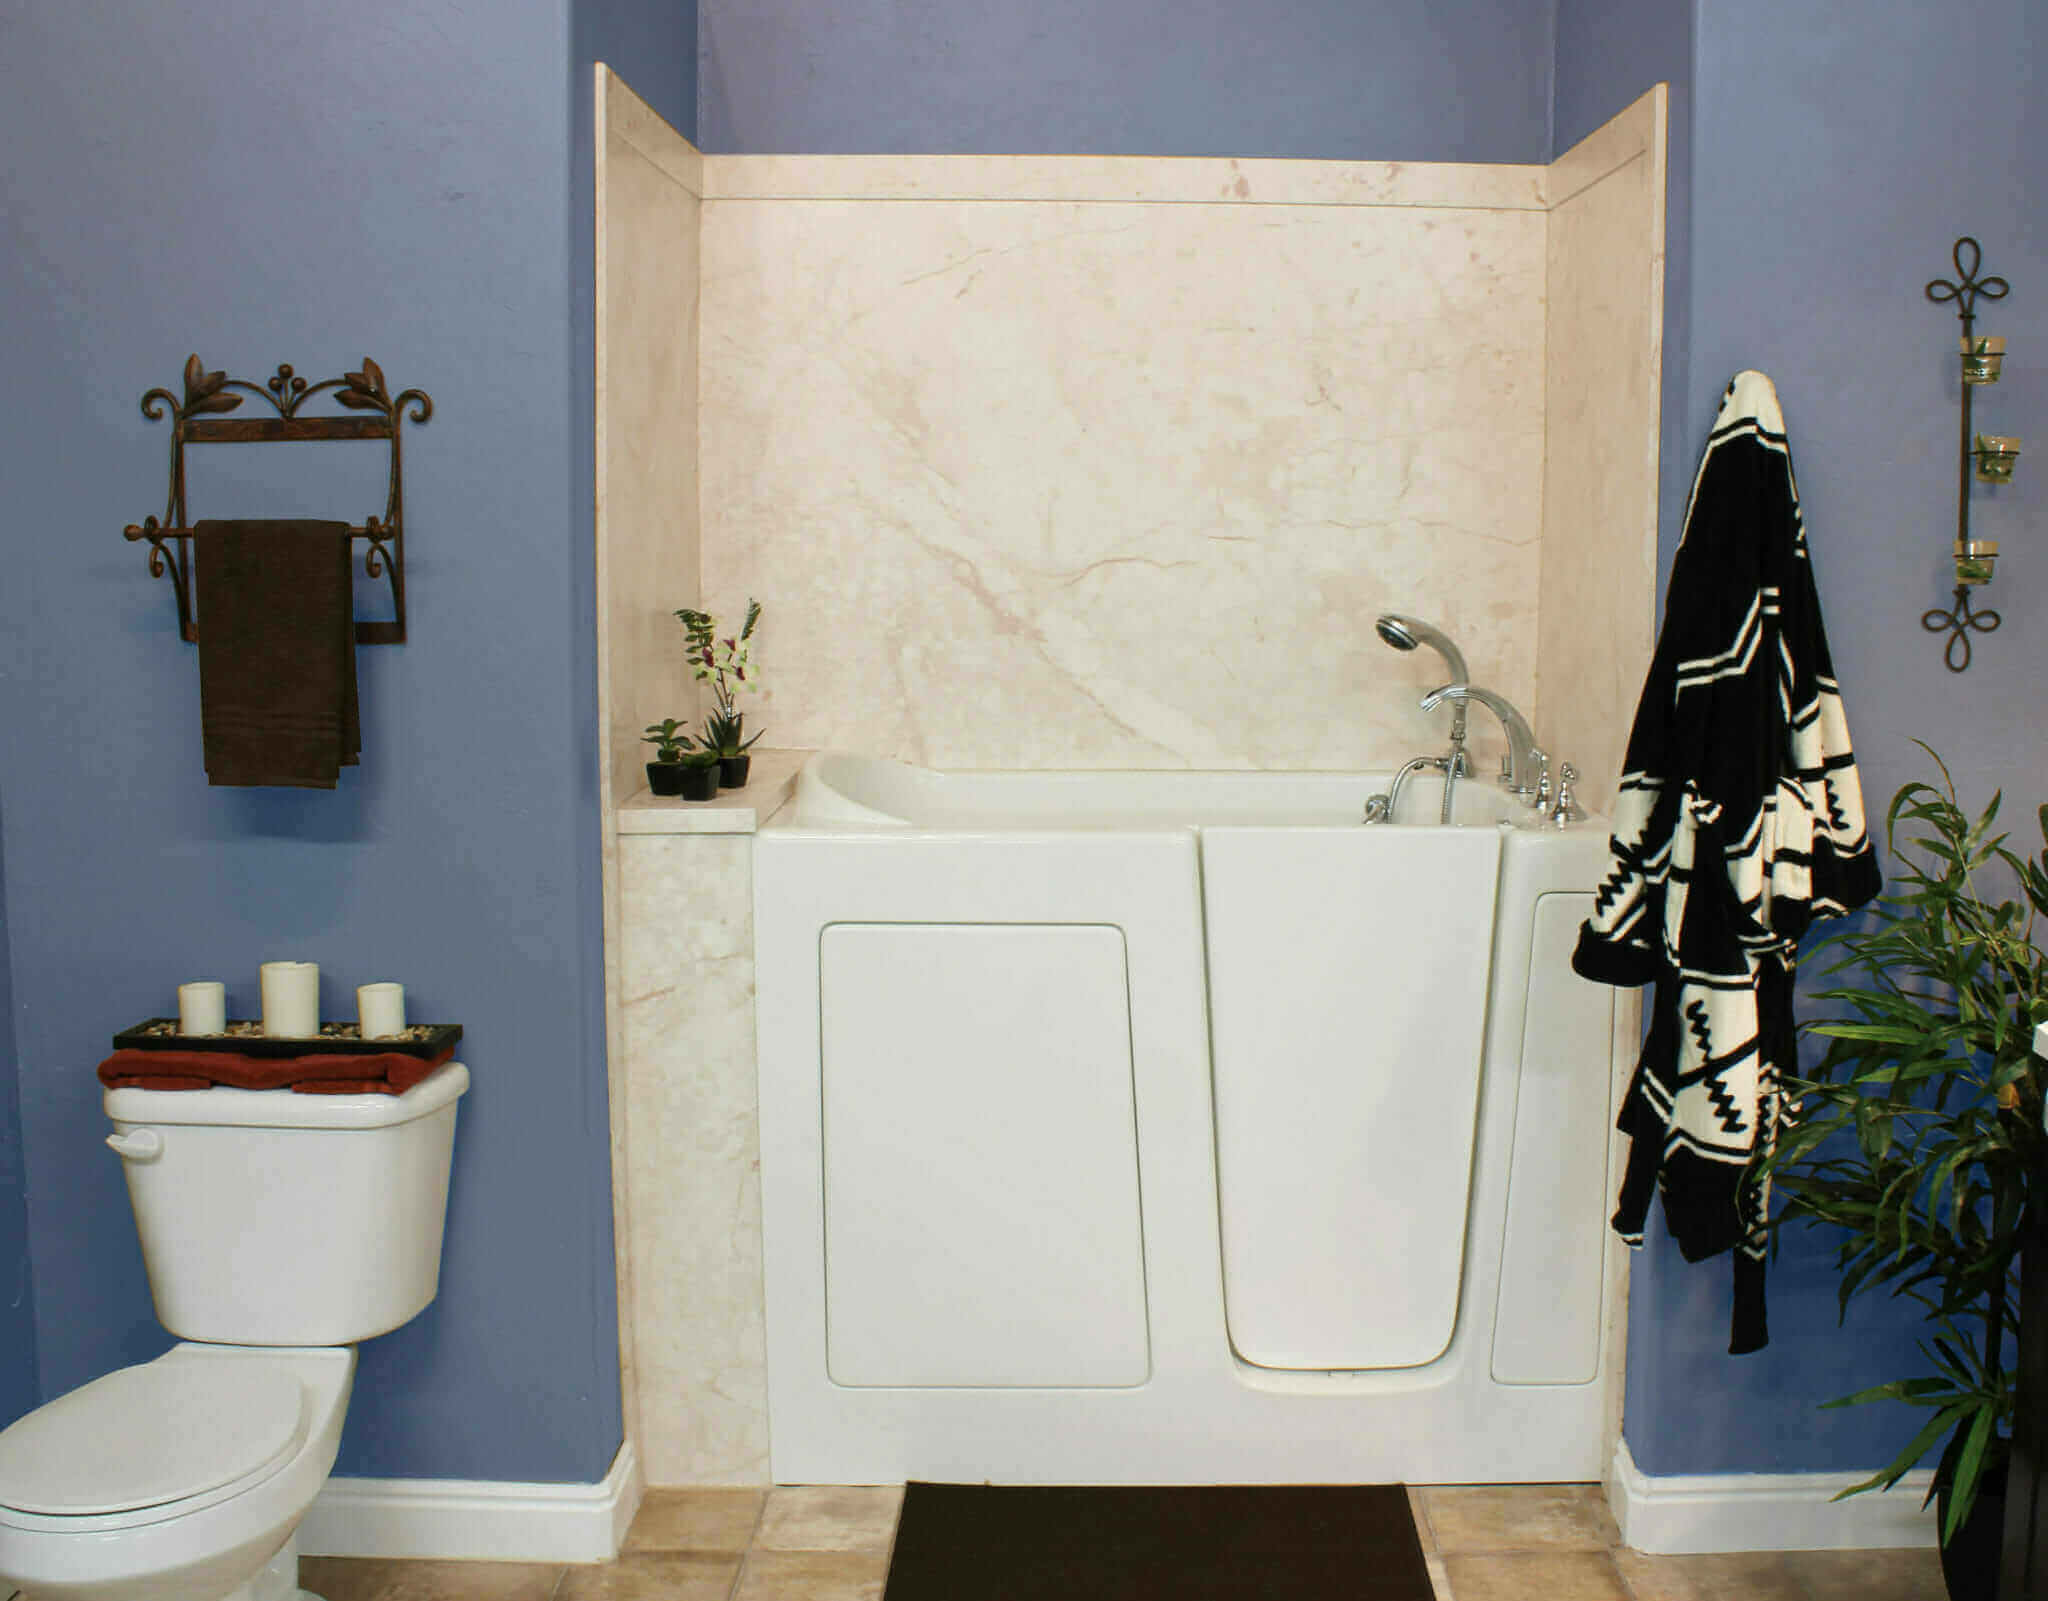 Phoenix Walk In Tubs Installers Five Star Bath Solutions Of Phoenix 480 382 5950